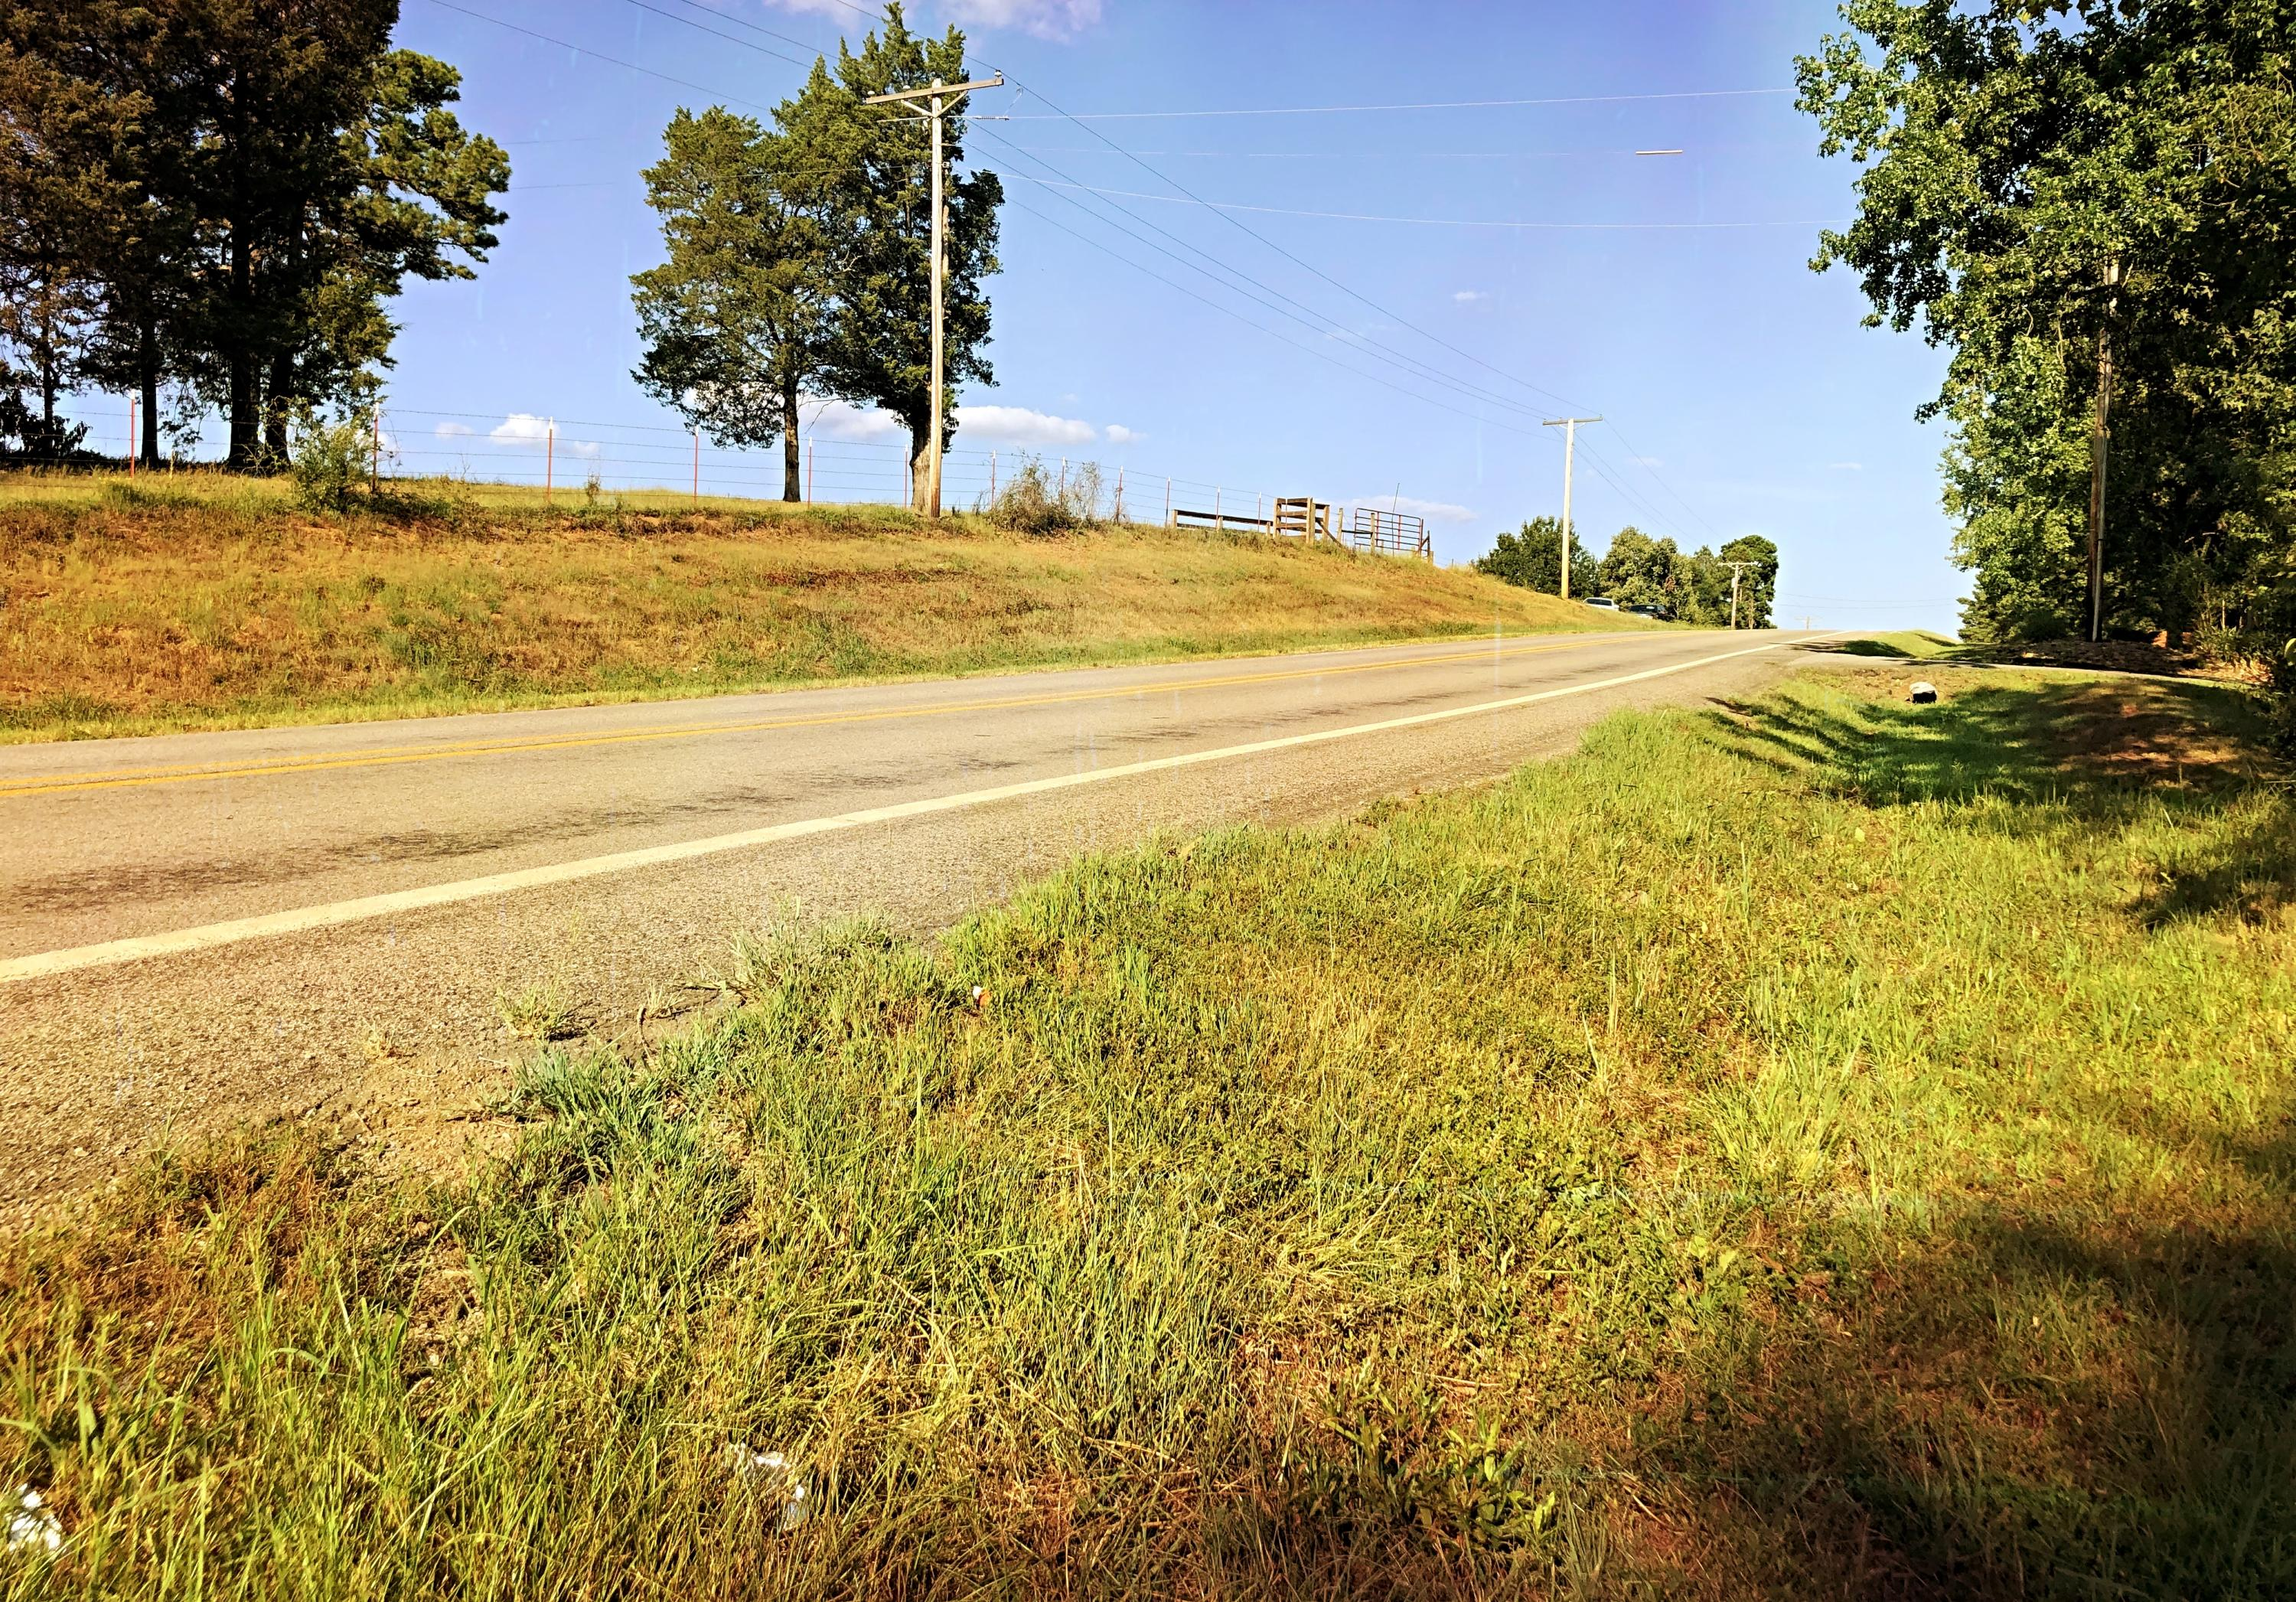 Large photo 10 of land for sale at 0 State Highway 155 , Dardanelle, AR, listed by Coldwell Banker James R. Ford